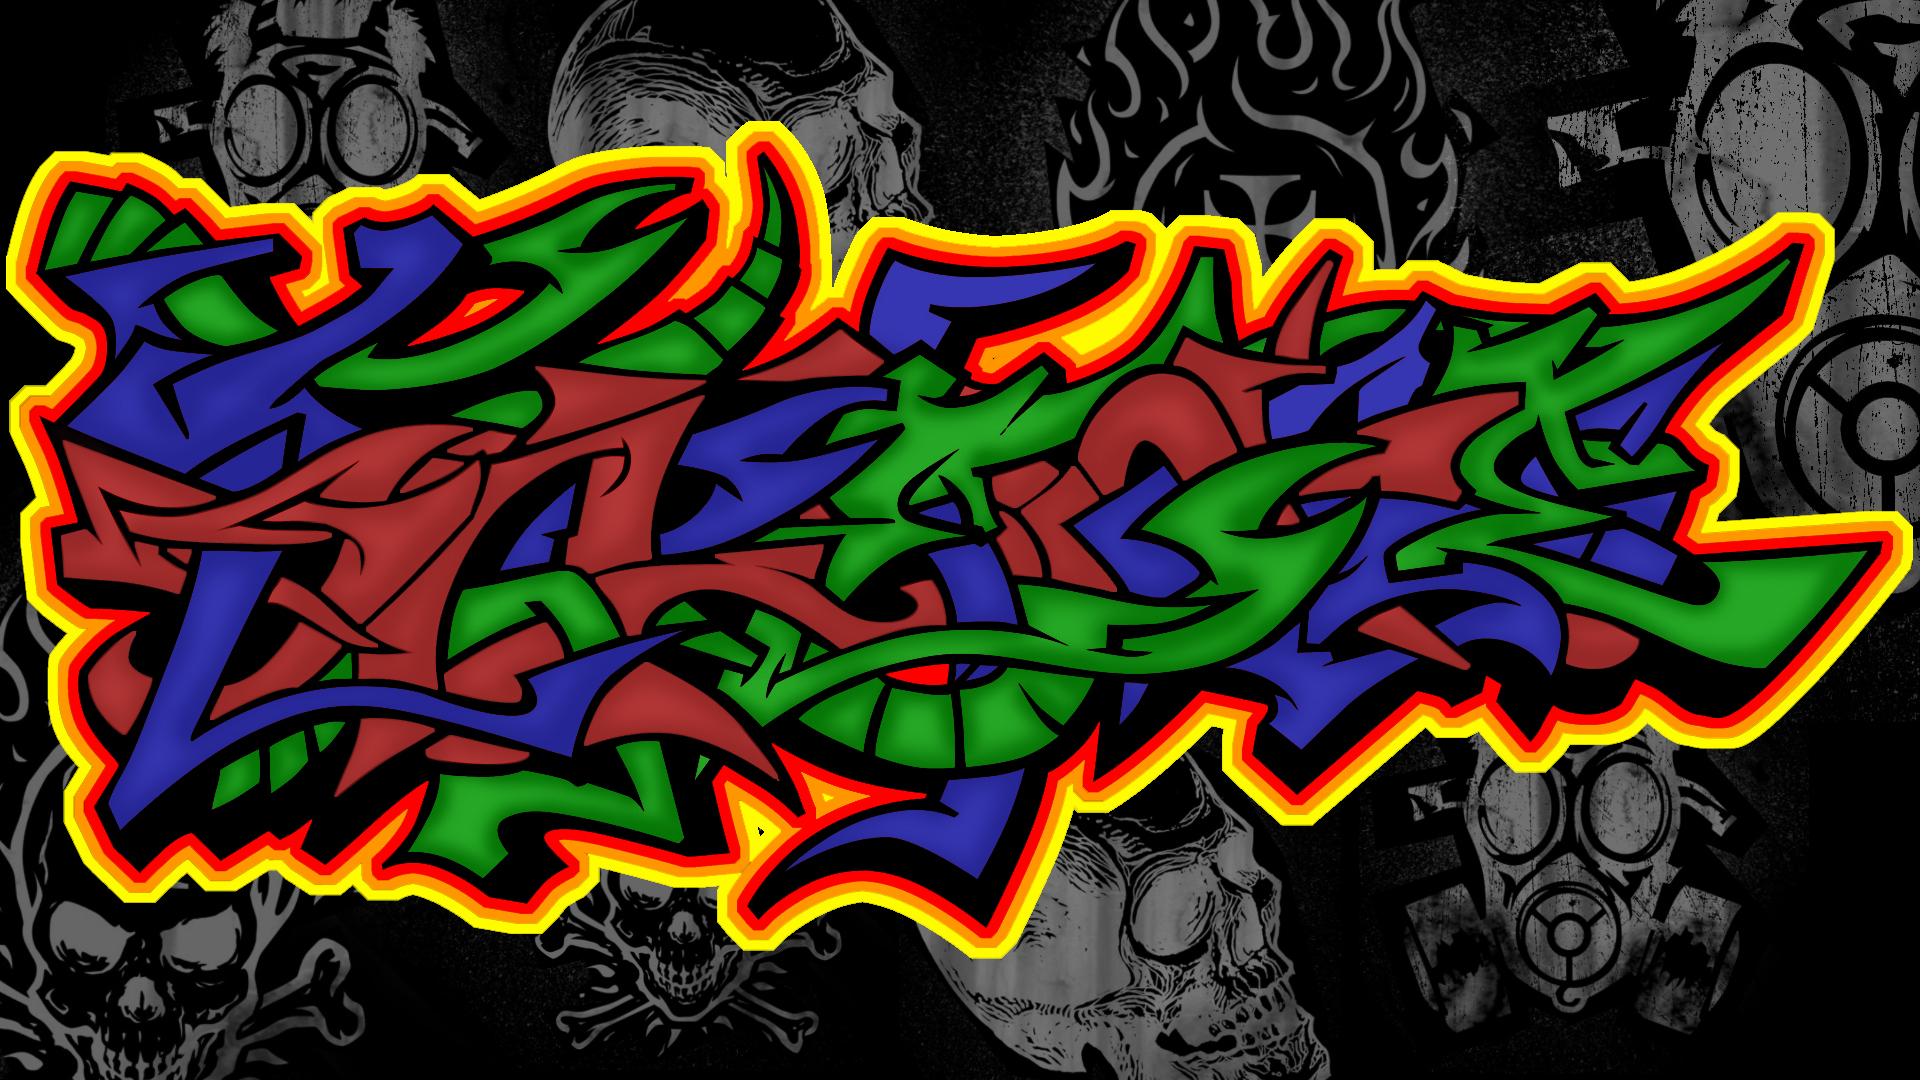 Graffiti wallpapers 1080p hd wallpapers bigbackgroundcom 1920x1080